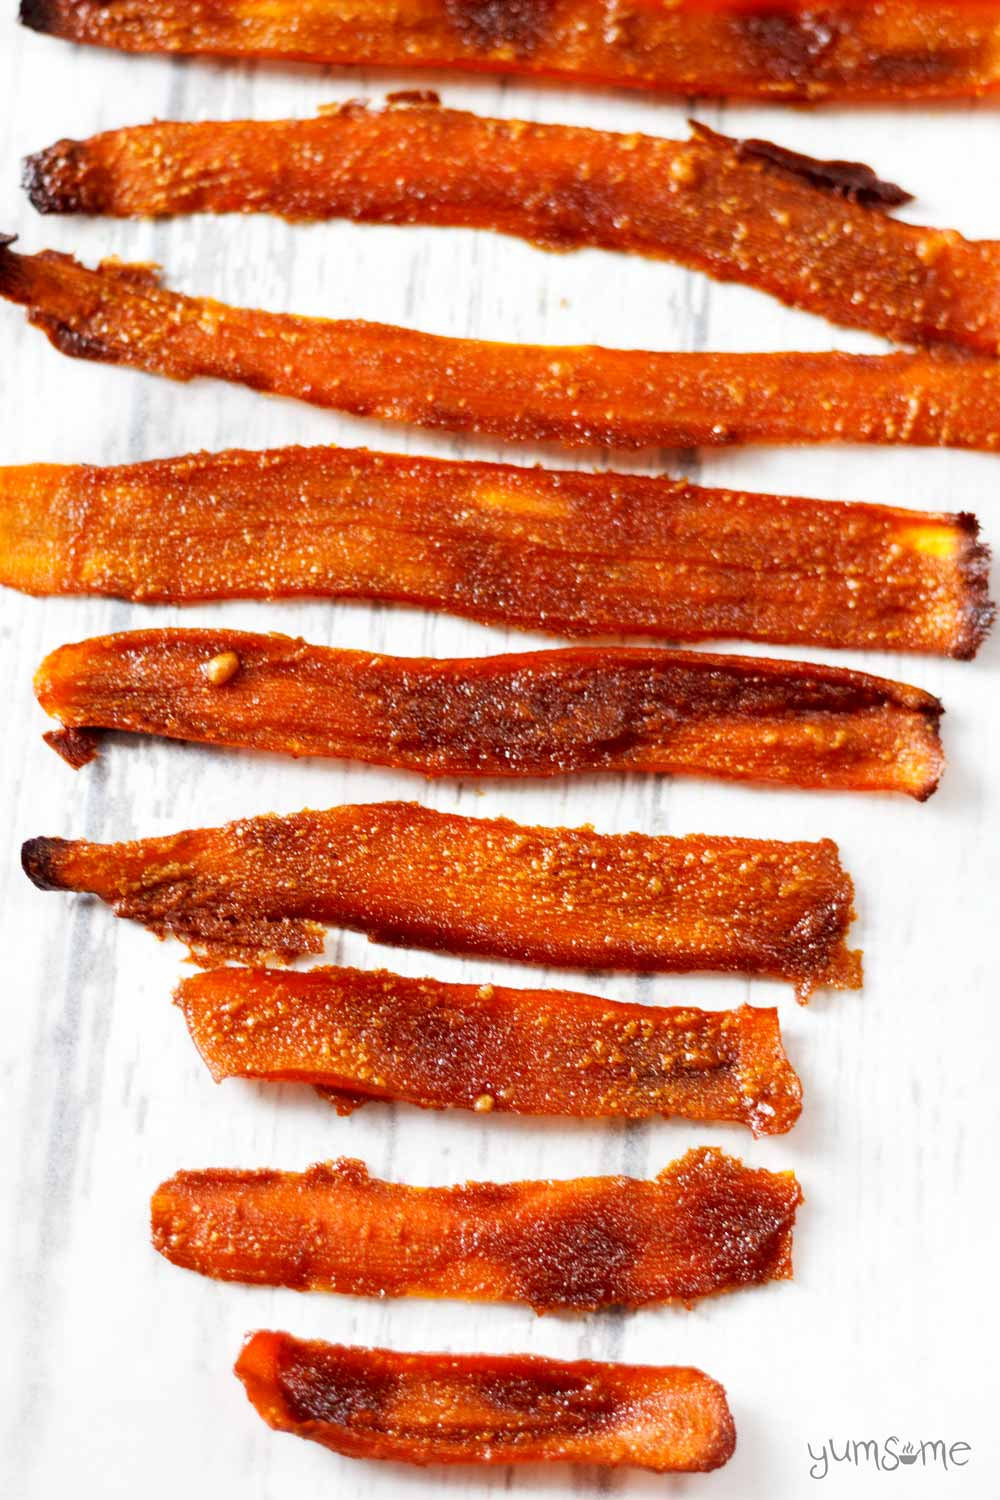 the best vegan carrot bacon | yumsome.com